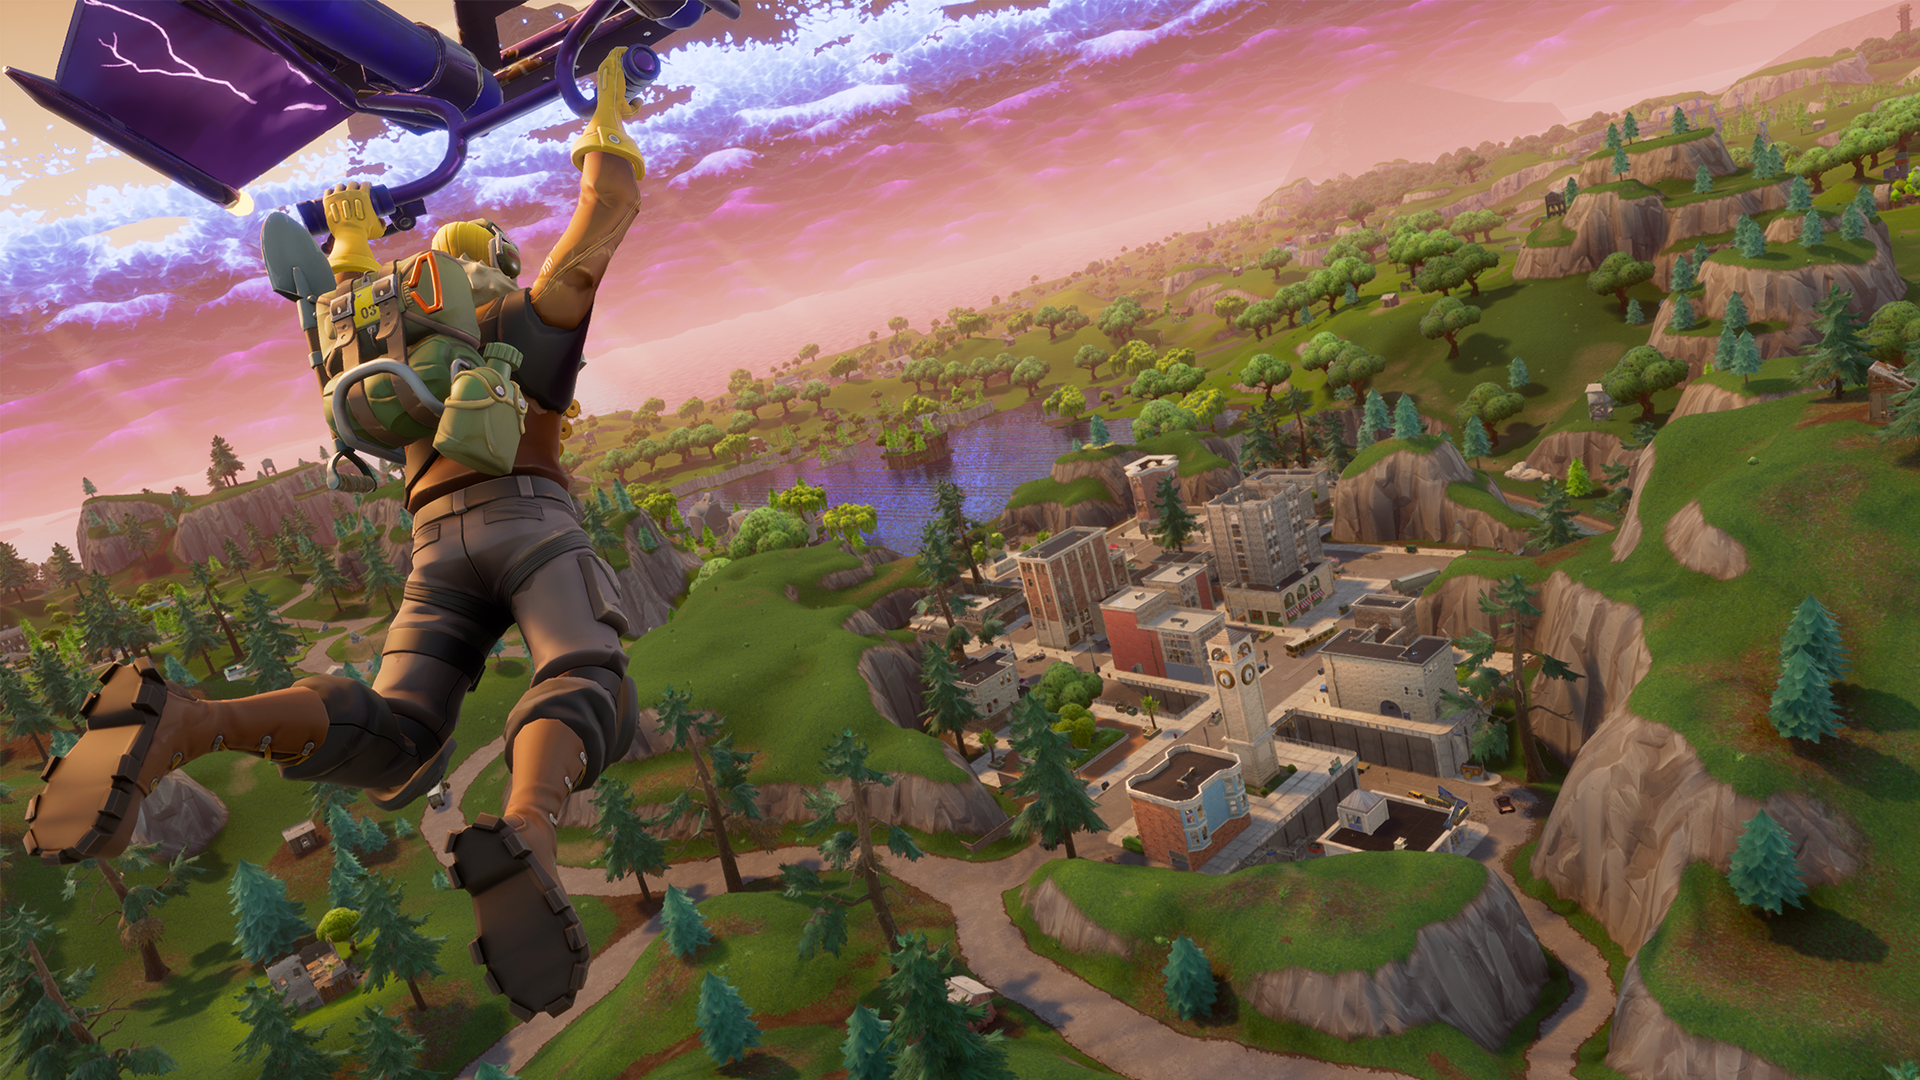 When Did Season 2 Come Out In Fortnite Fortnite Season 5 Release Date And Time Revealed Cnet